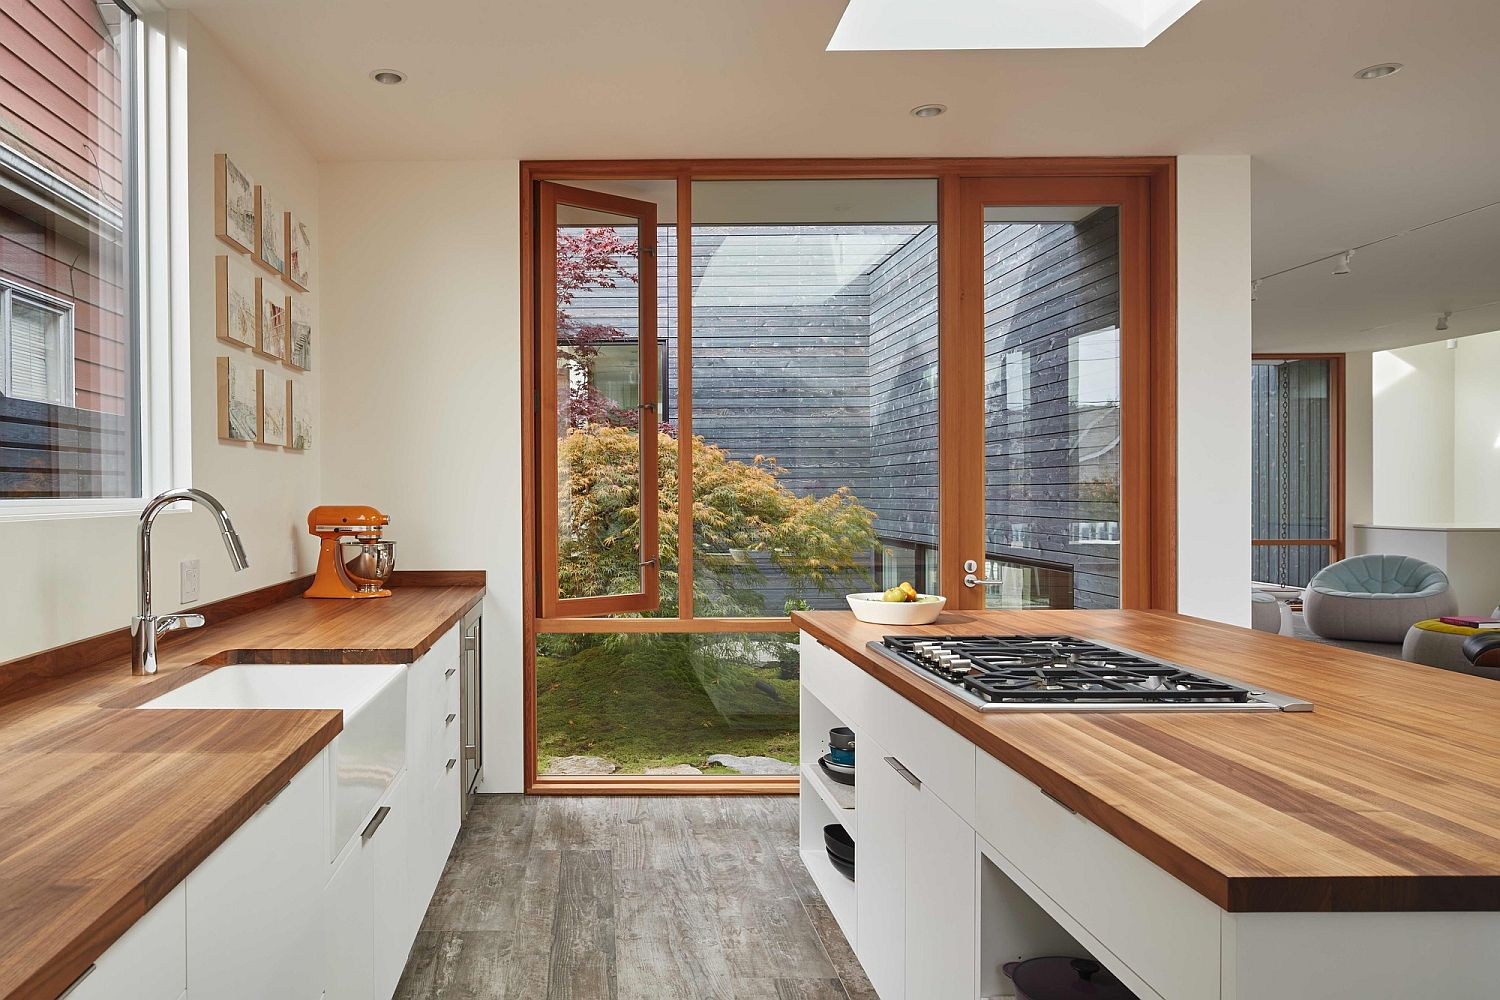 Skylight along with the large window bring natural light into the lovely kitchen